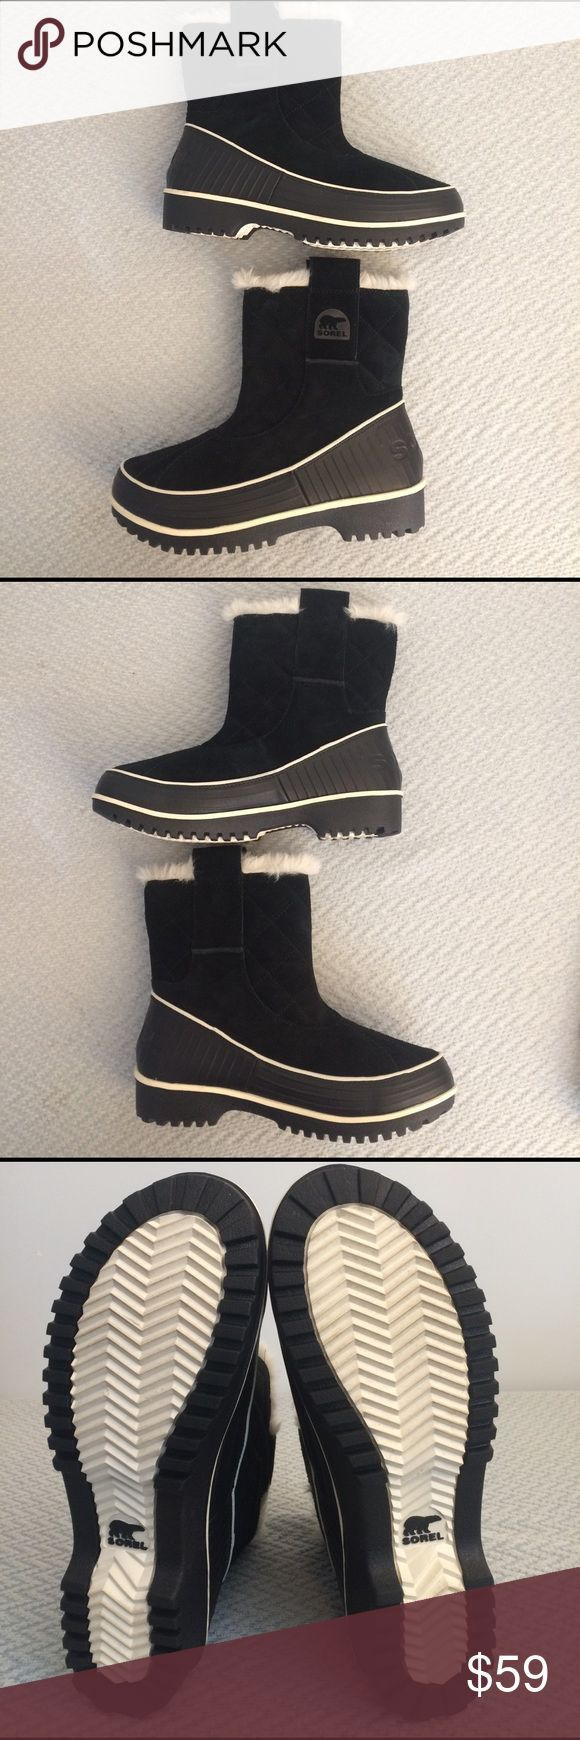 Sorel Tivoli II Size 8 Gorgeous boots! Sorel Tivoli II pull on boots. They're in like new condition might've been worn once or twice, there's no wear on the tread.  The boots are in perfect condition. Sorel Shoes Winter & Rain Boots